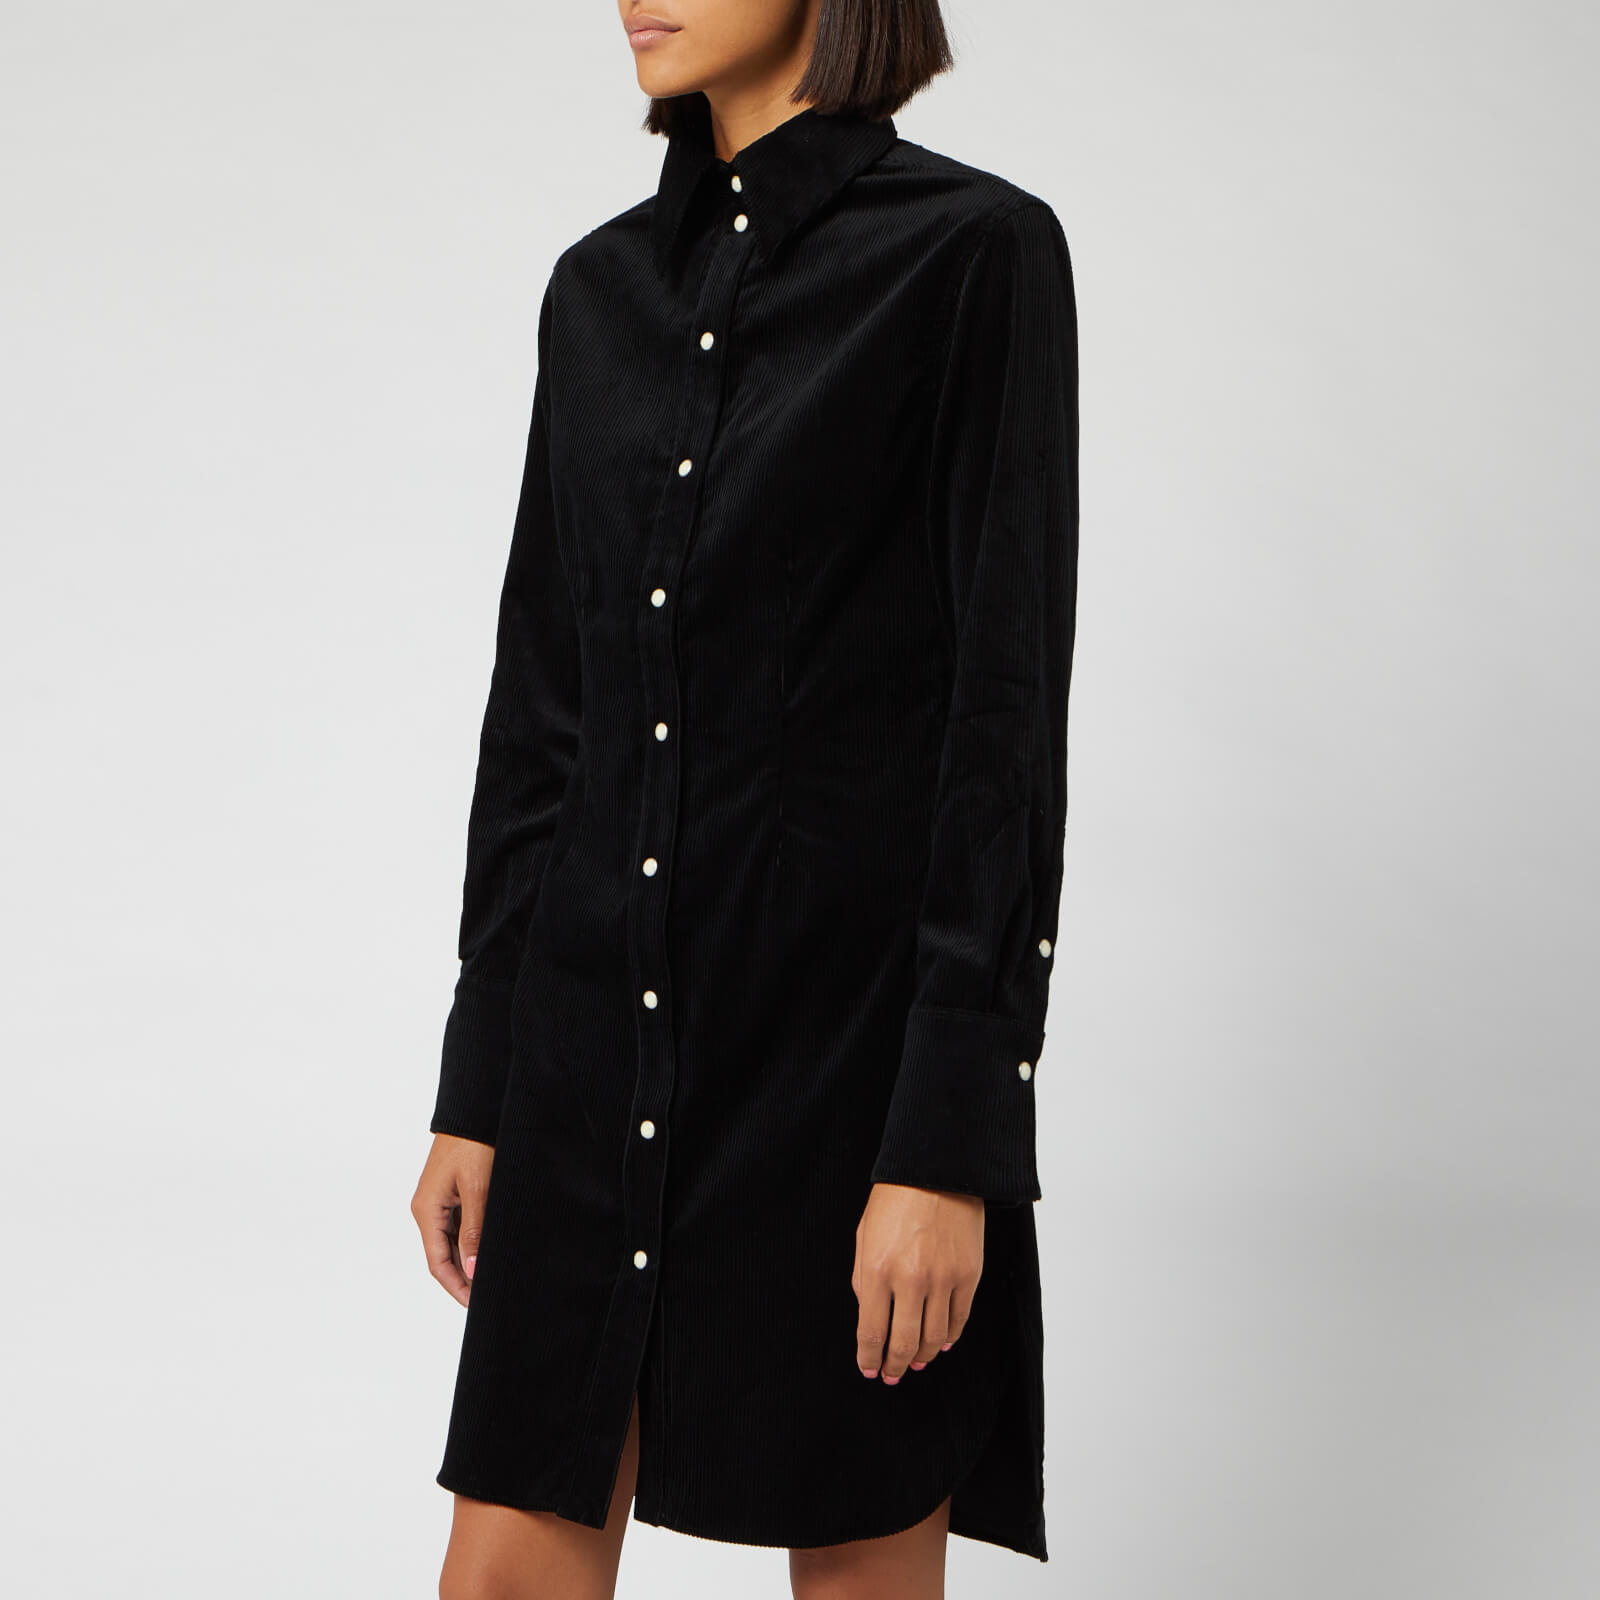 Maison Kitsuné Women's Fitted Shirt Dress - Black - FR 36/UK 8